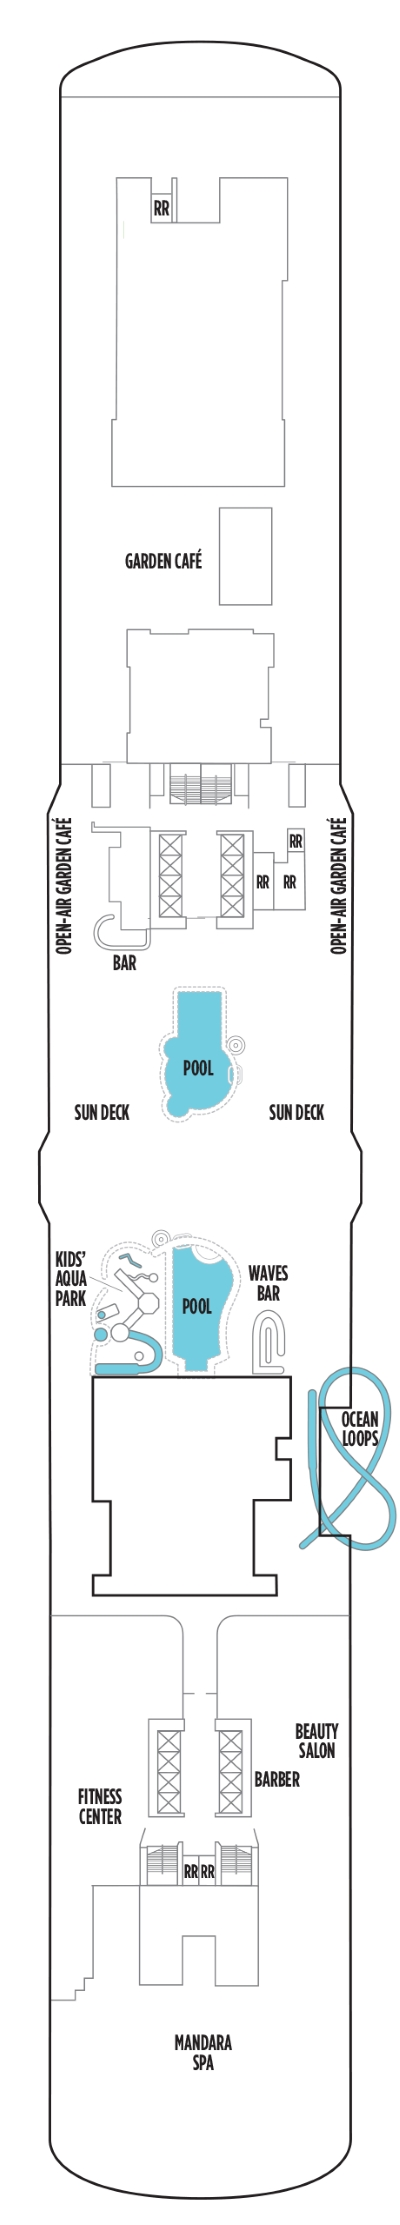 Norwegian Joy Deck 16 layout